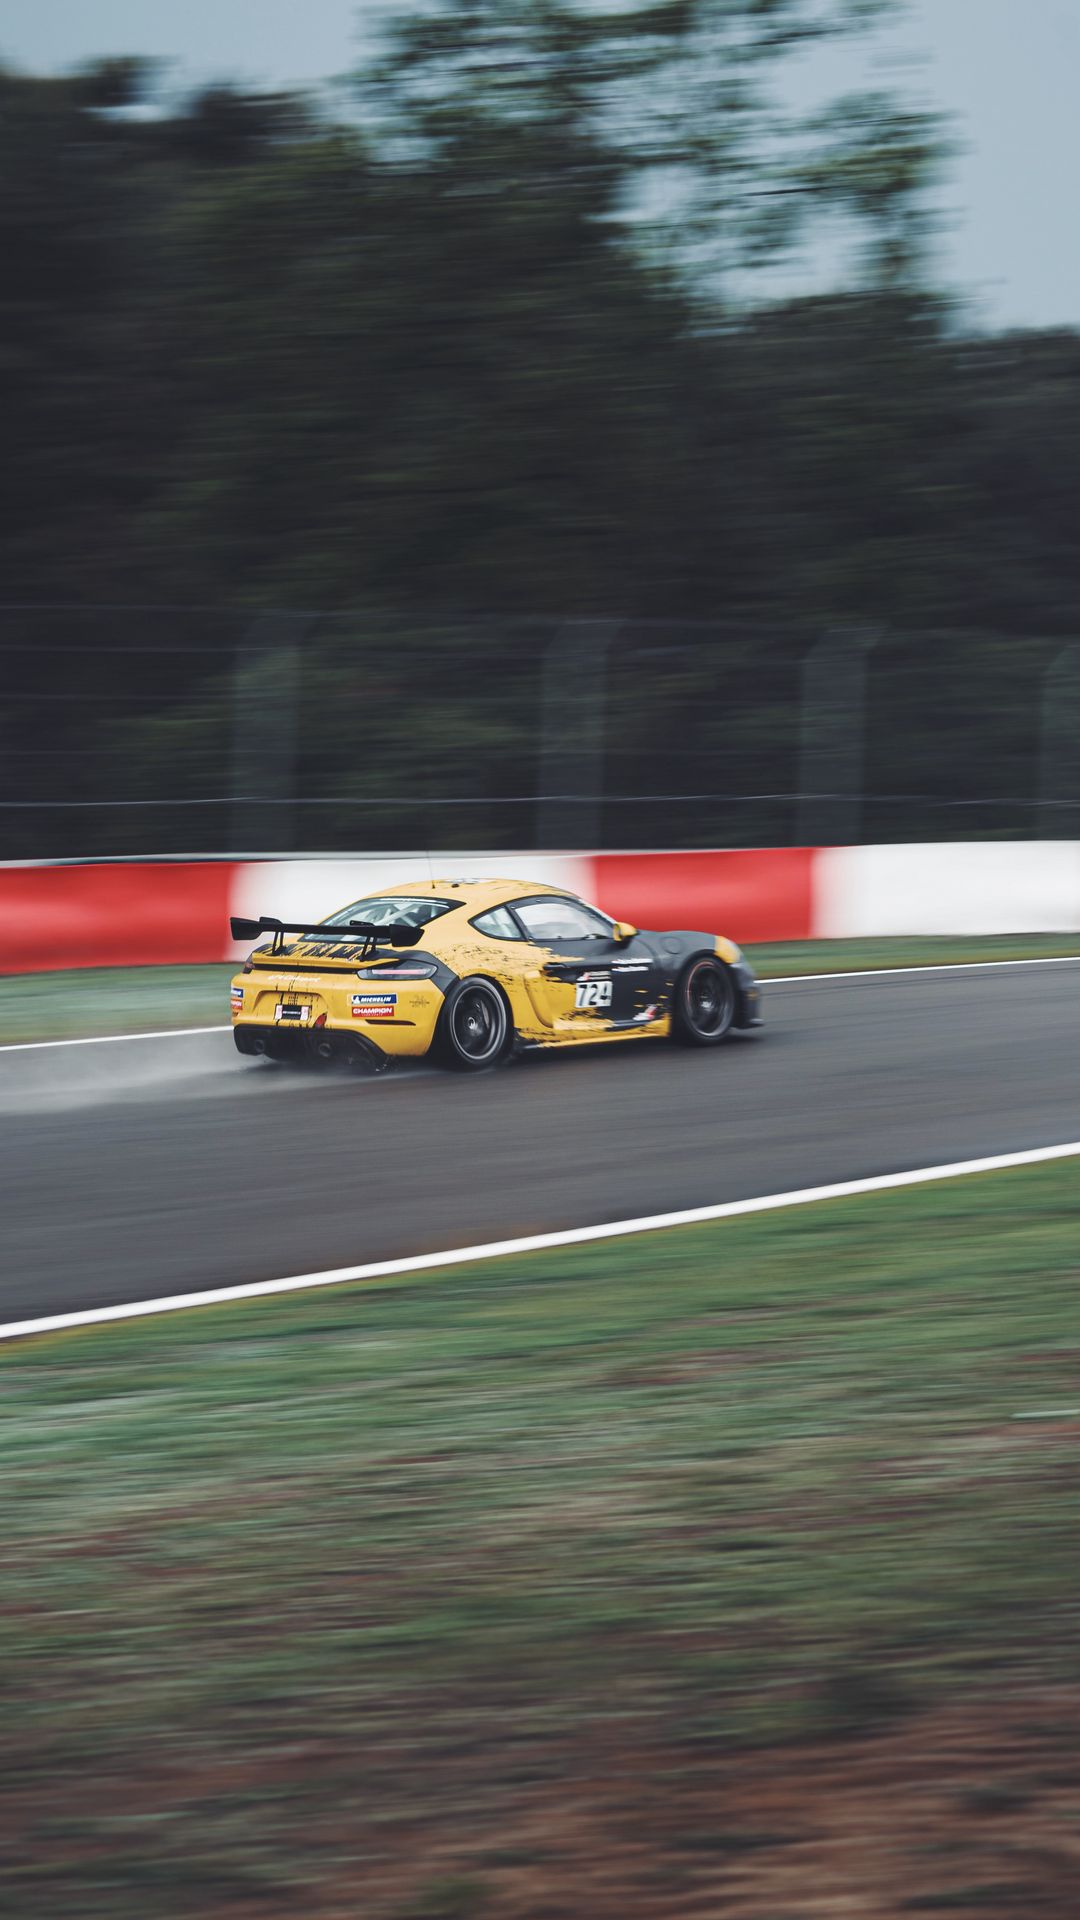 Porsche Cayman GT4 Wallpapers Download for Android Background